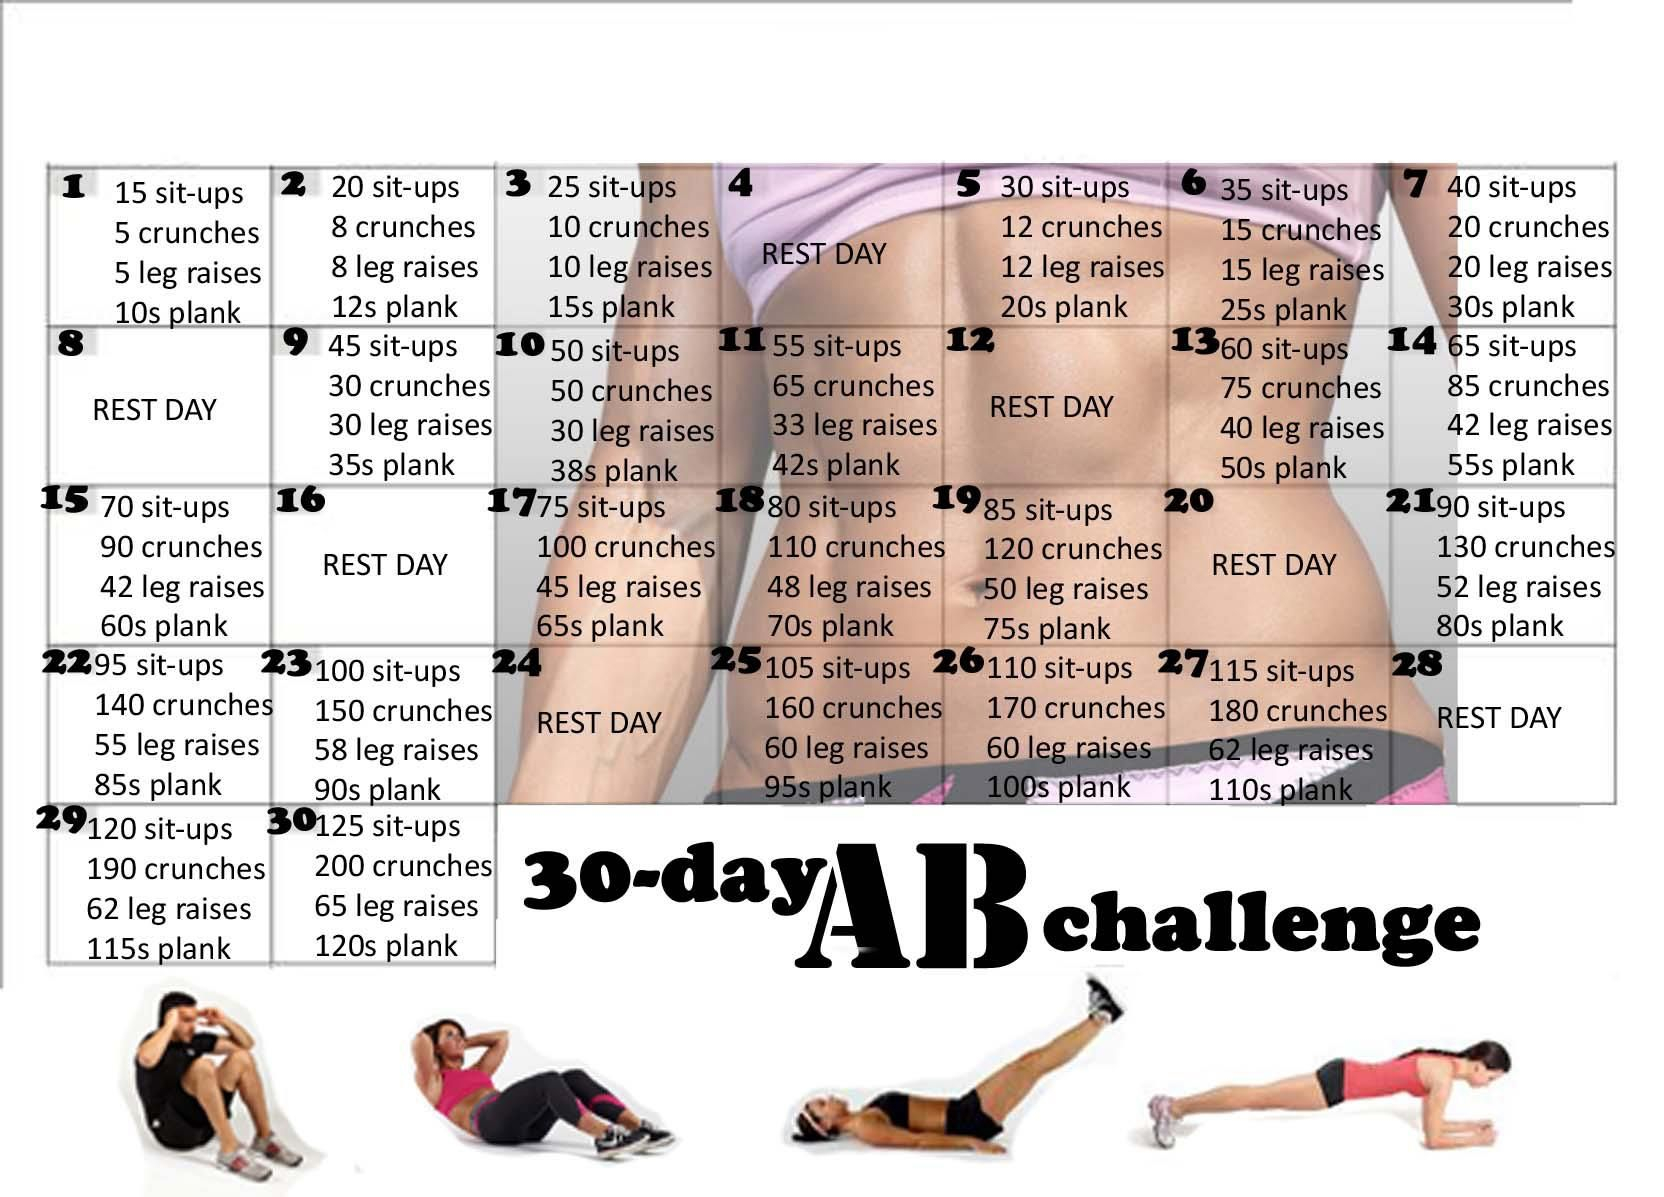 30 Day Ab Challenge | 30 Day Ab Challenge, 30 Day Abs, Ab Intended For 30 Day Flat Abs Challenge Calendar